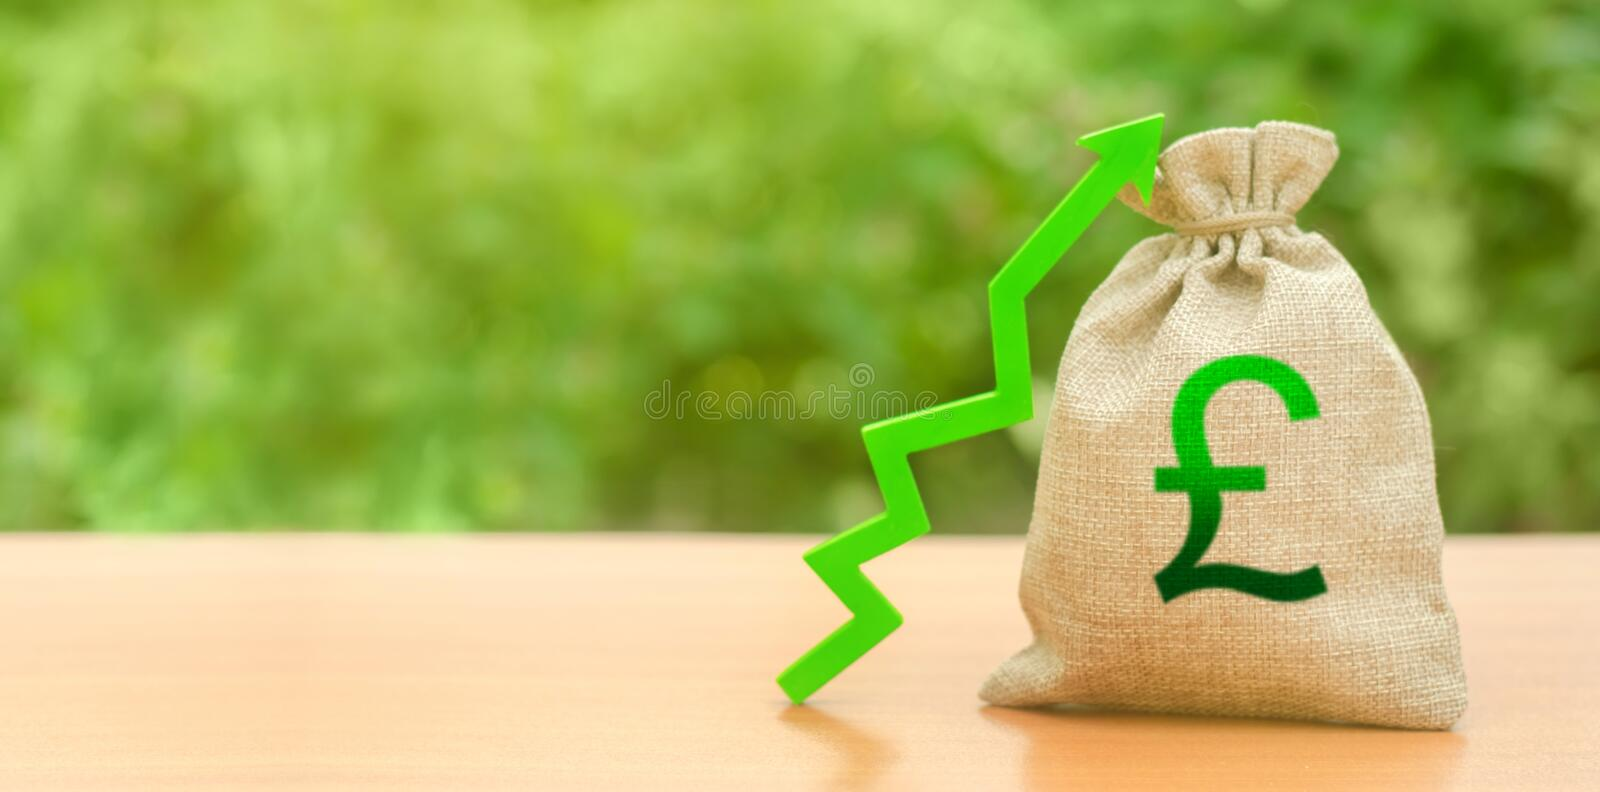 Money bag with pound sterling symbol and green up arrow. The growth of the national economy and the strength of the exchange rate. Brexit Great Britain stock photography